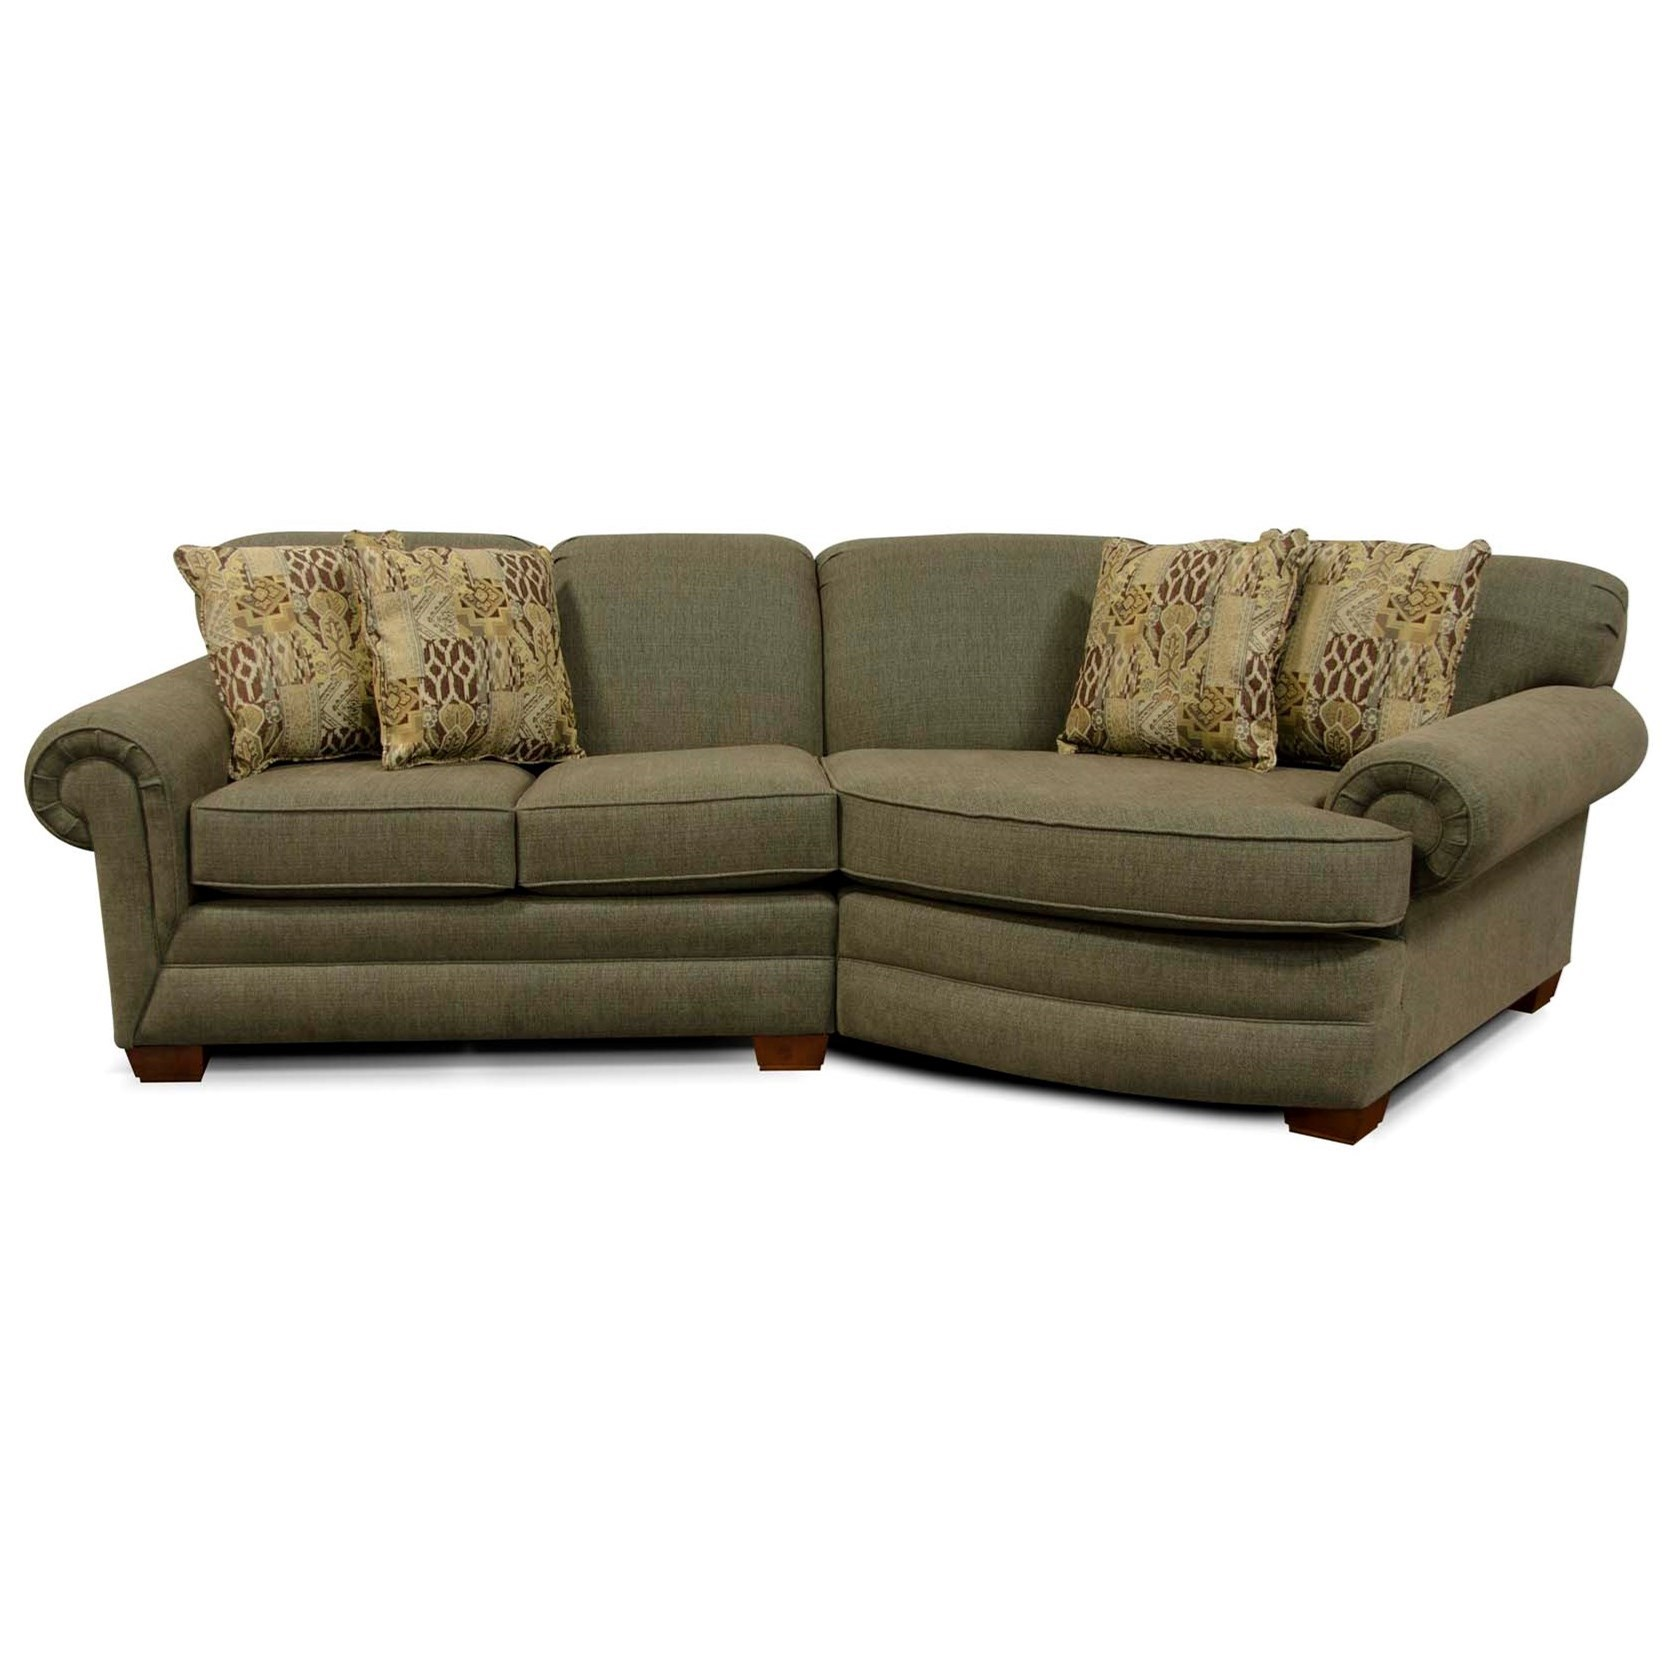 England monroe small sectional sofa boulevard home - Boston interiors clearance center ...